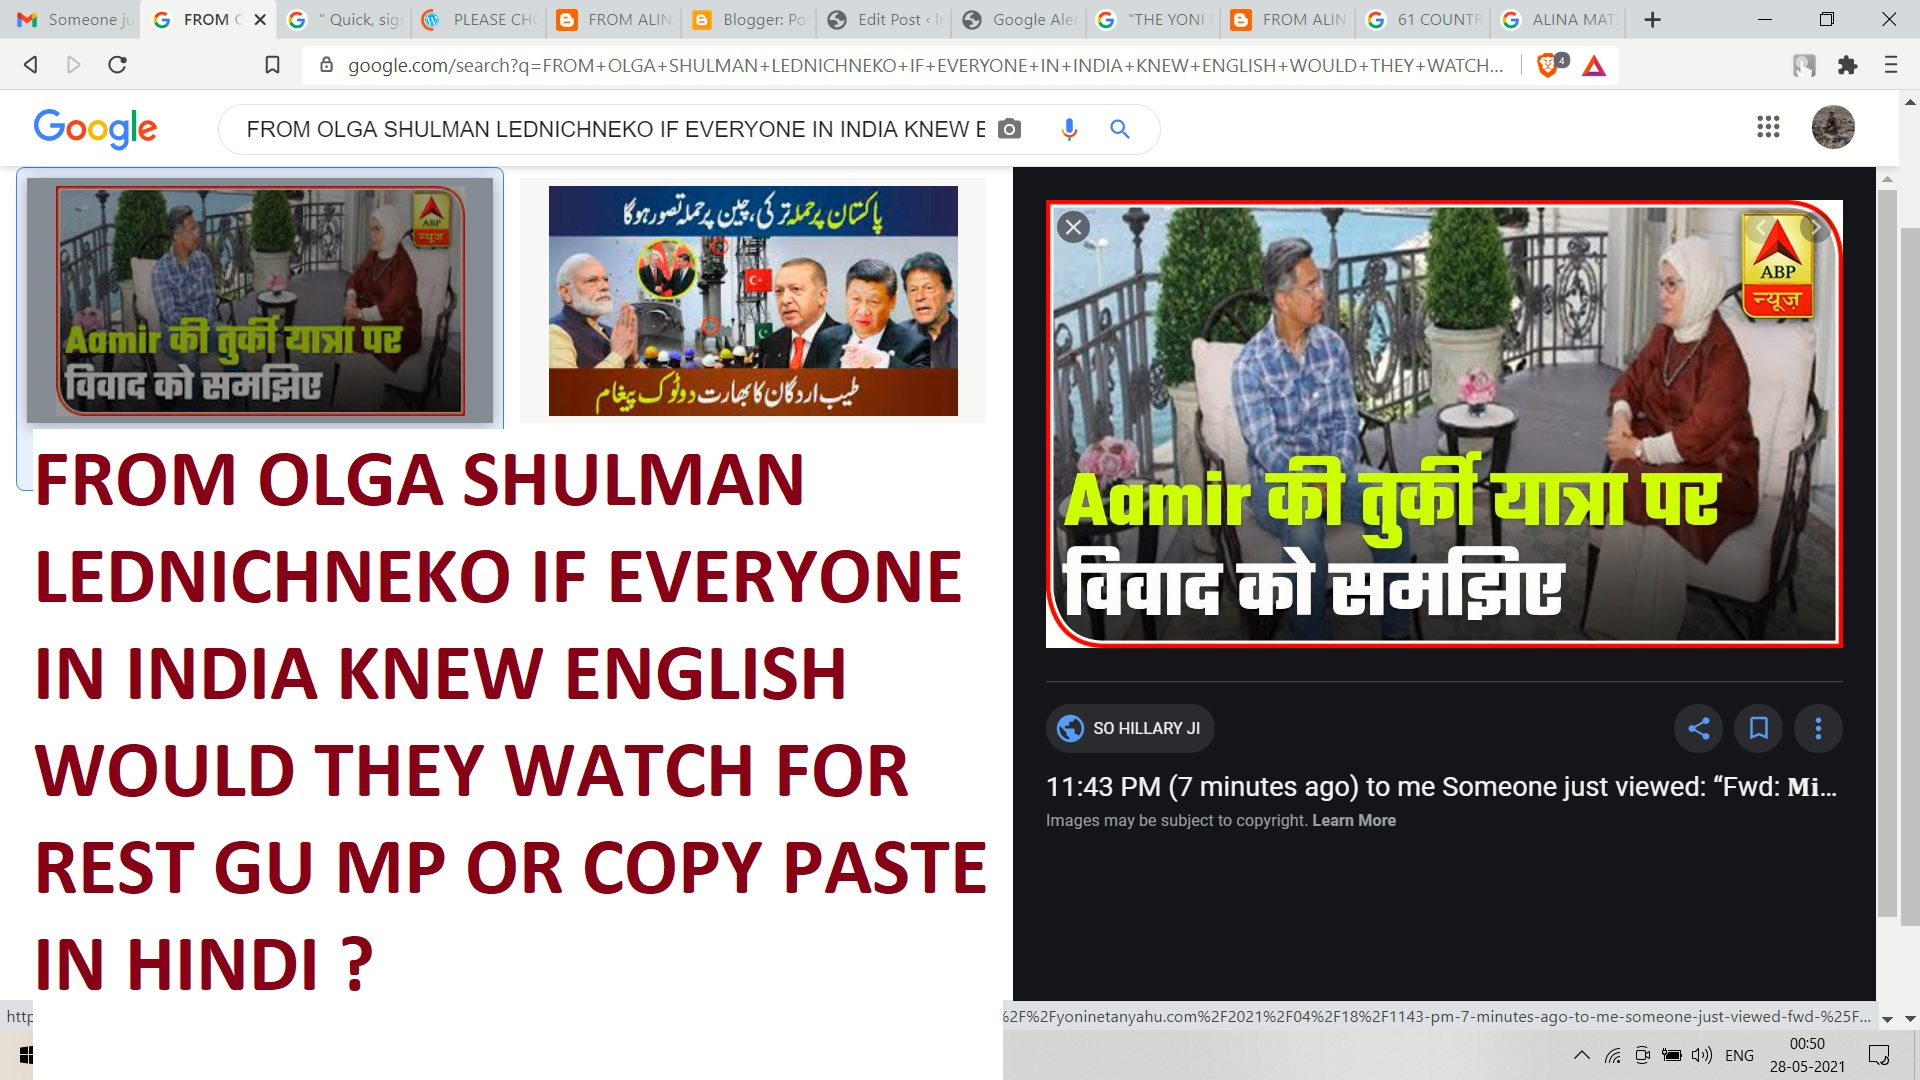 FROM OLGA SHULMAN LEDNICHNEKO IF EVERYONE IN INDIA KNEW ENGLISH WOULD THEY WATCH FOR REST GU MP OR COPY PASTE IN HINDI